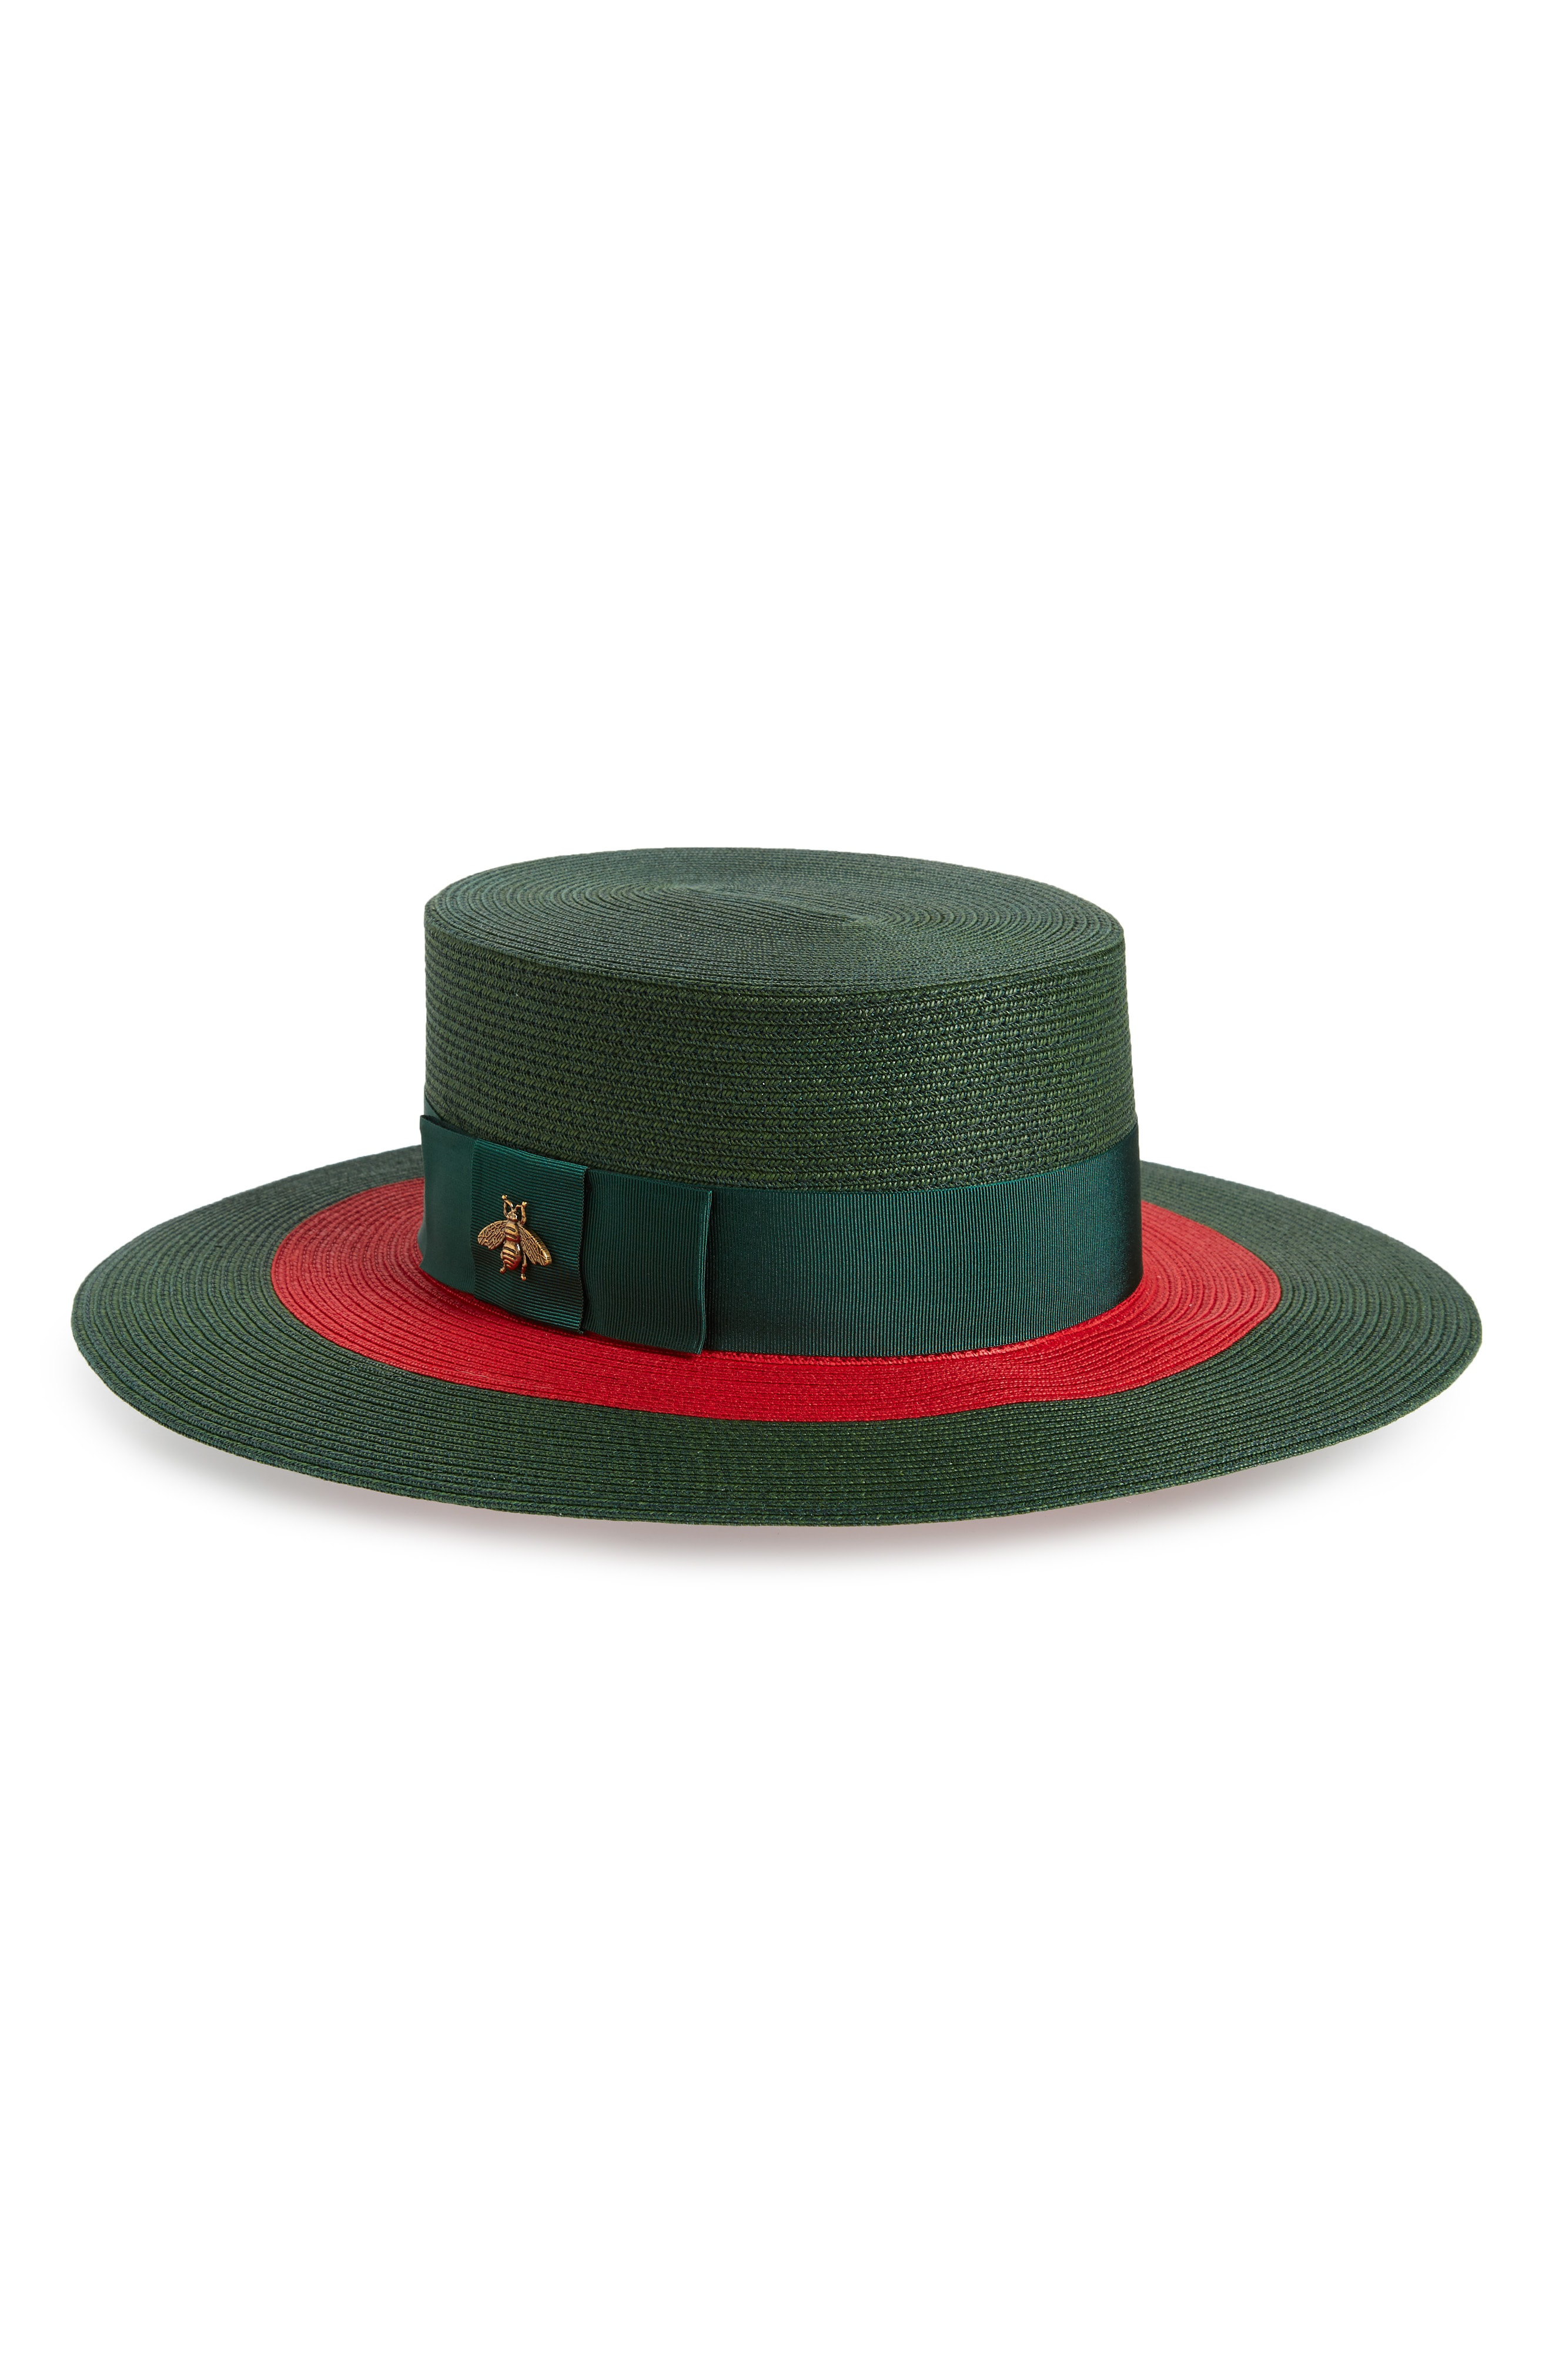 e719f059a768d Gucci Embellished Grosgrain-Trimmed Straw Hat In Green